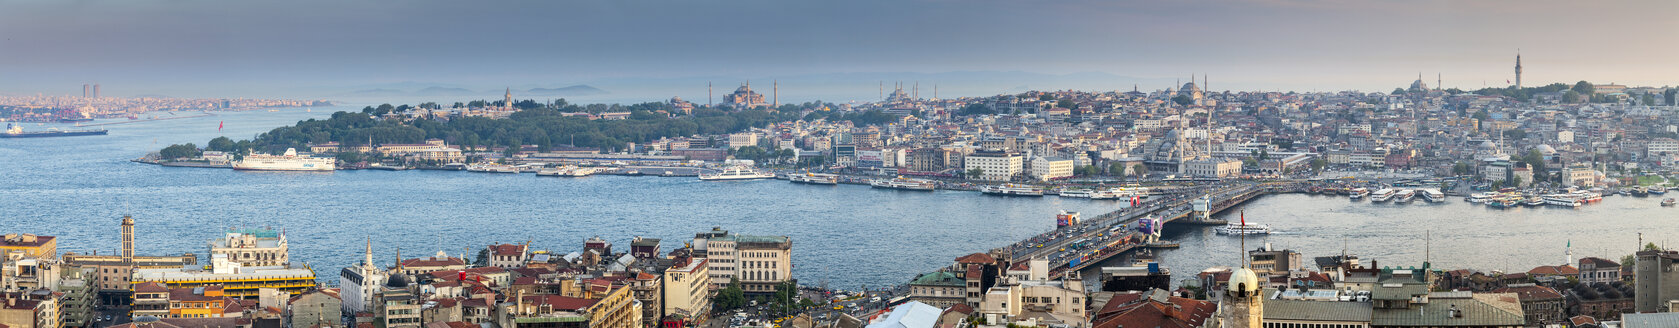 Turkey, Istanbul, cityscape of Eminonu Harbor, Galata Bridge and New Mosque - MDIF000033